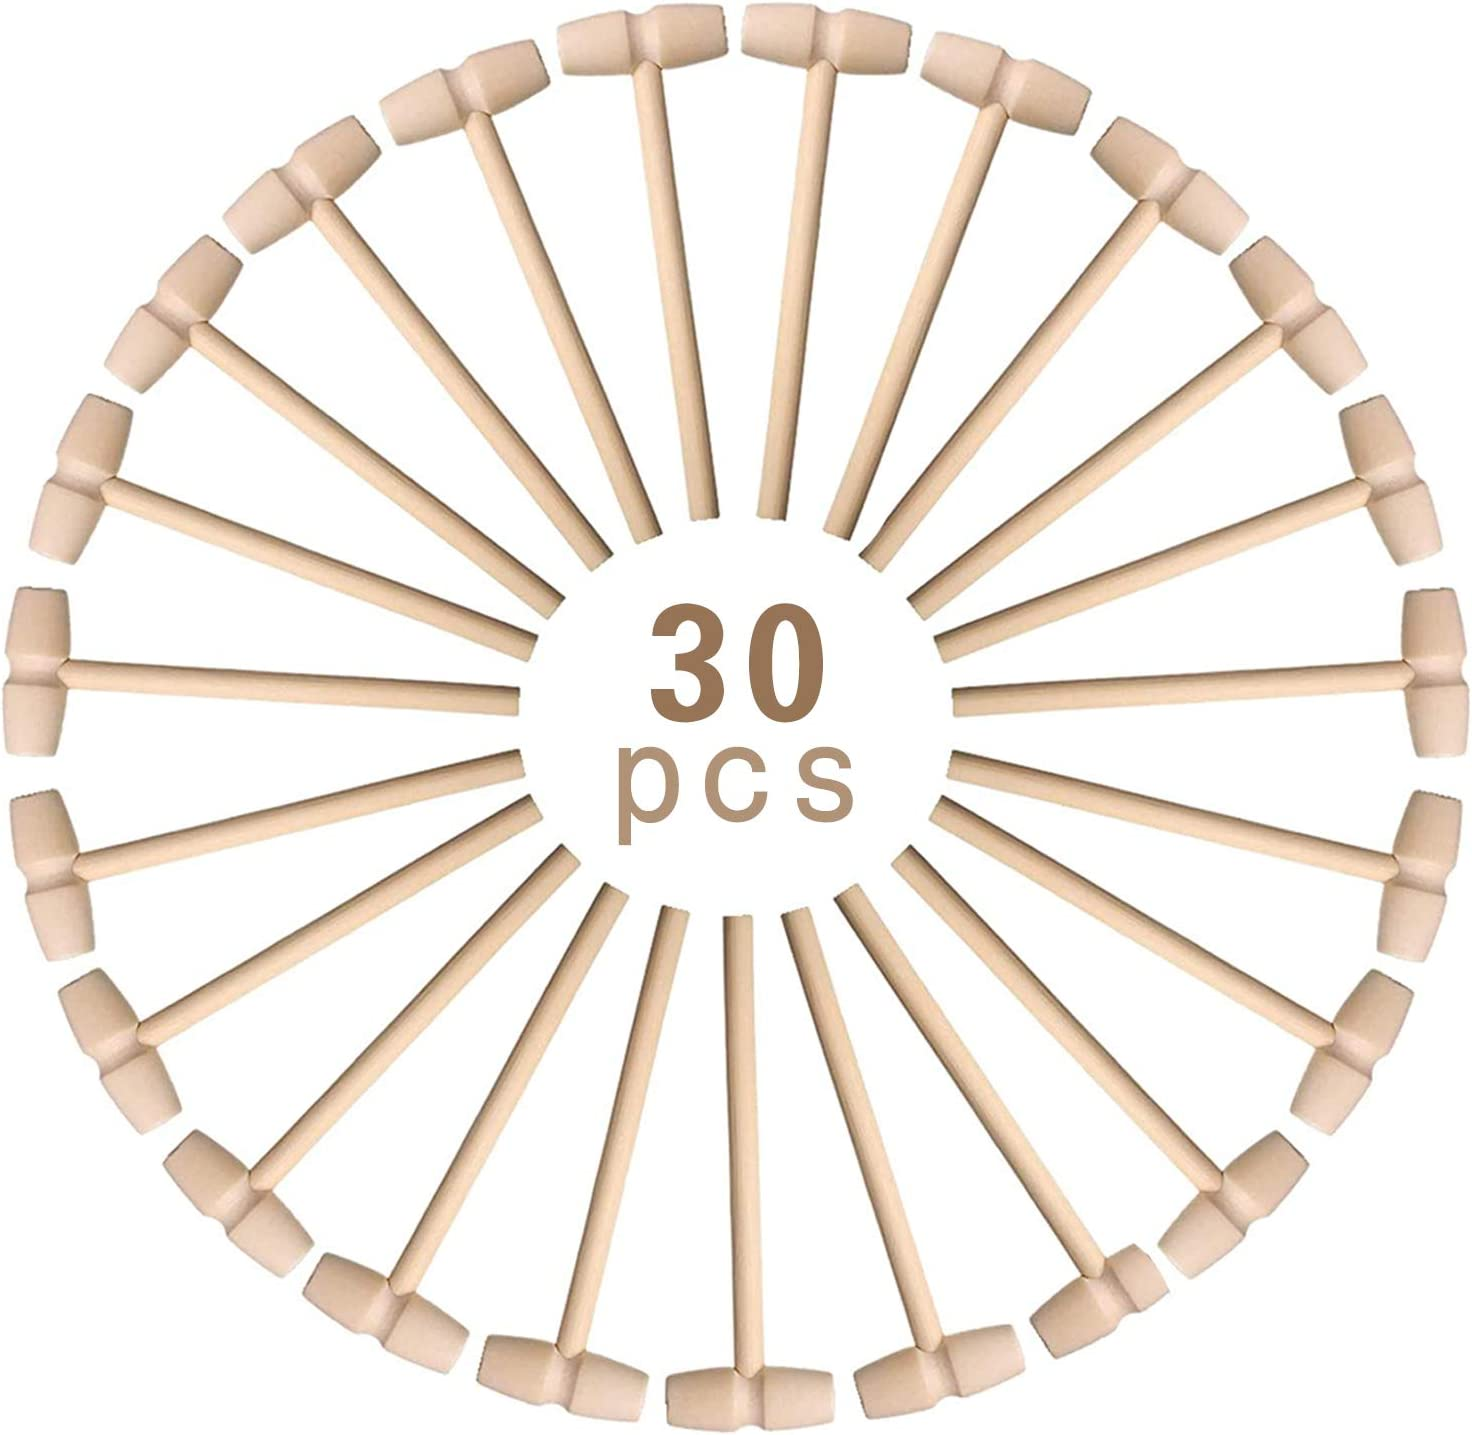 BAEONY 30 Pieces Mini Max 60% OFF Wooden Hammer Ranking TOP15 Mallet Pounding Toy Wo Small